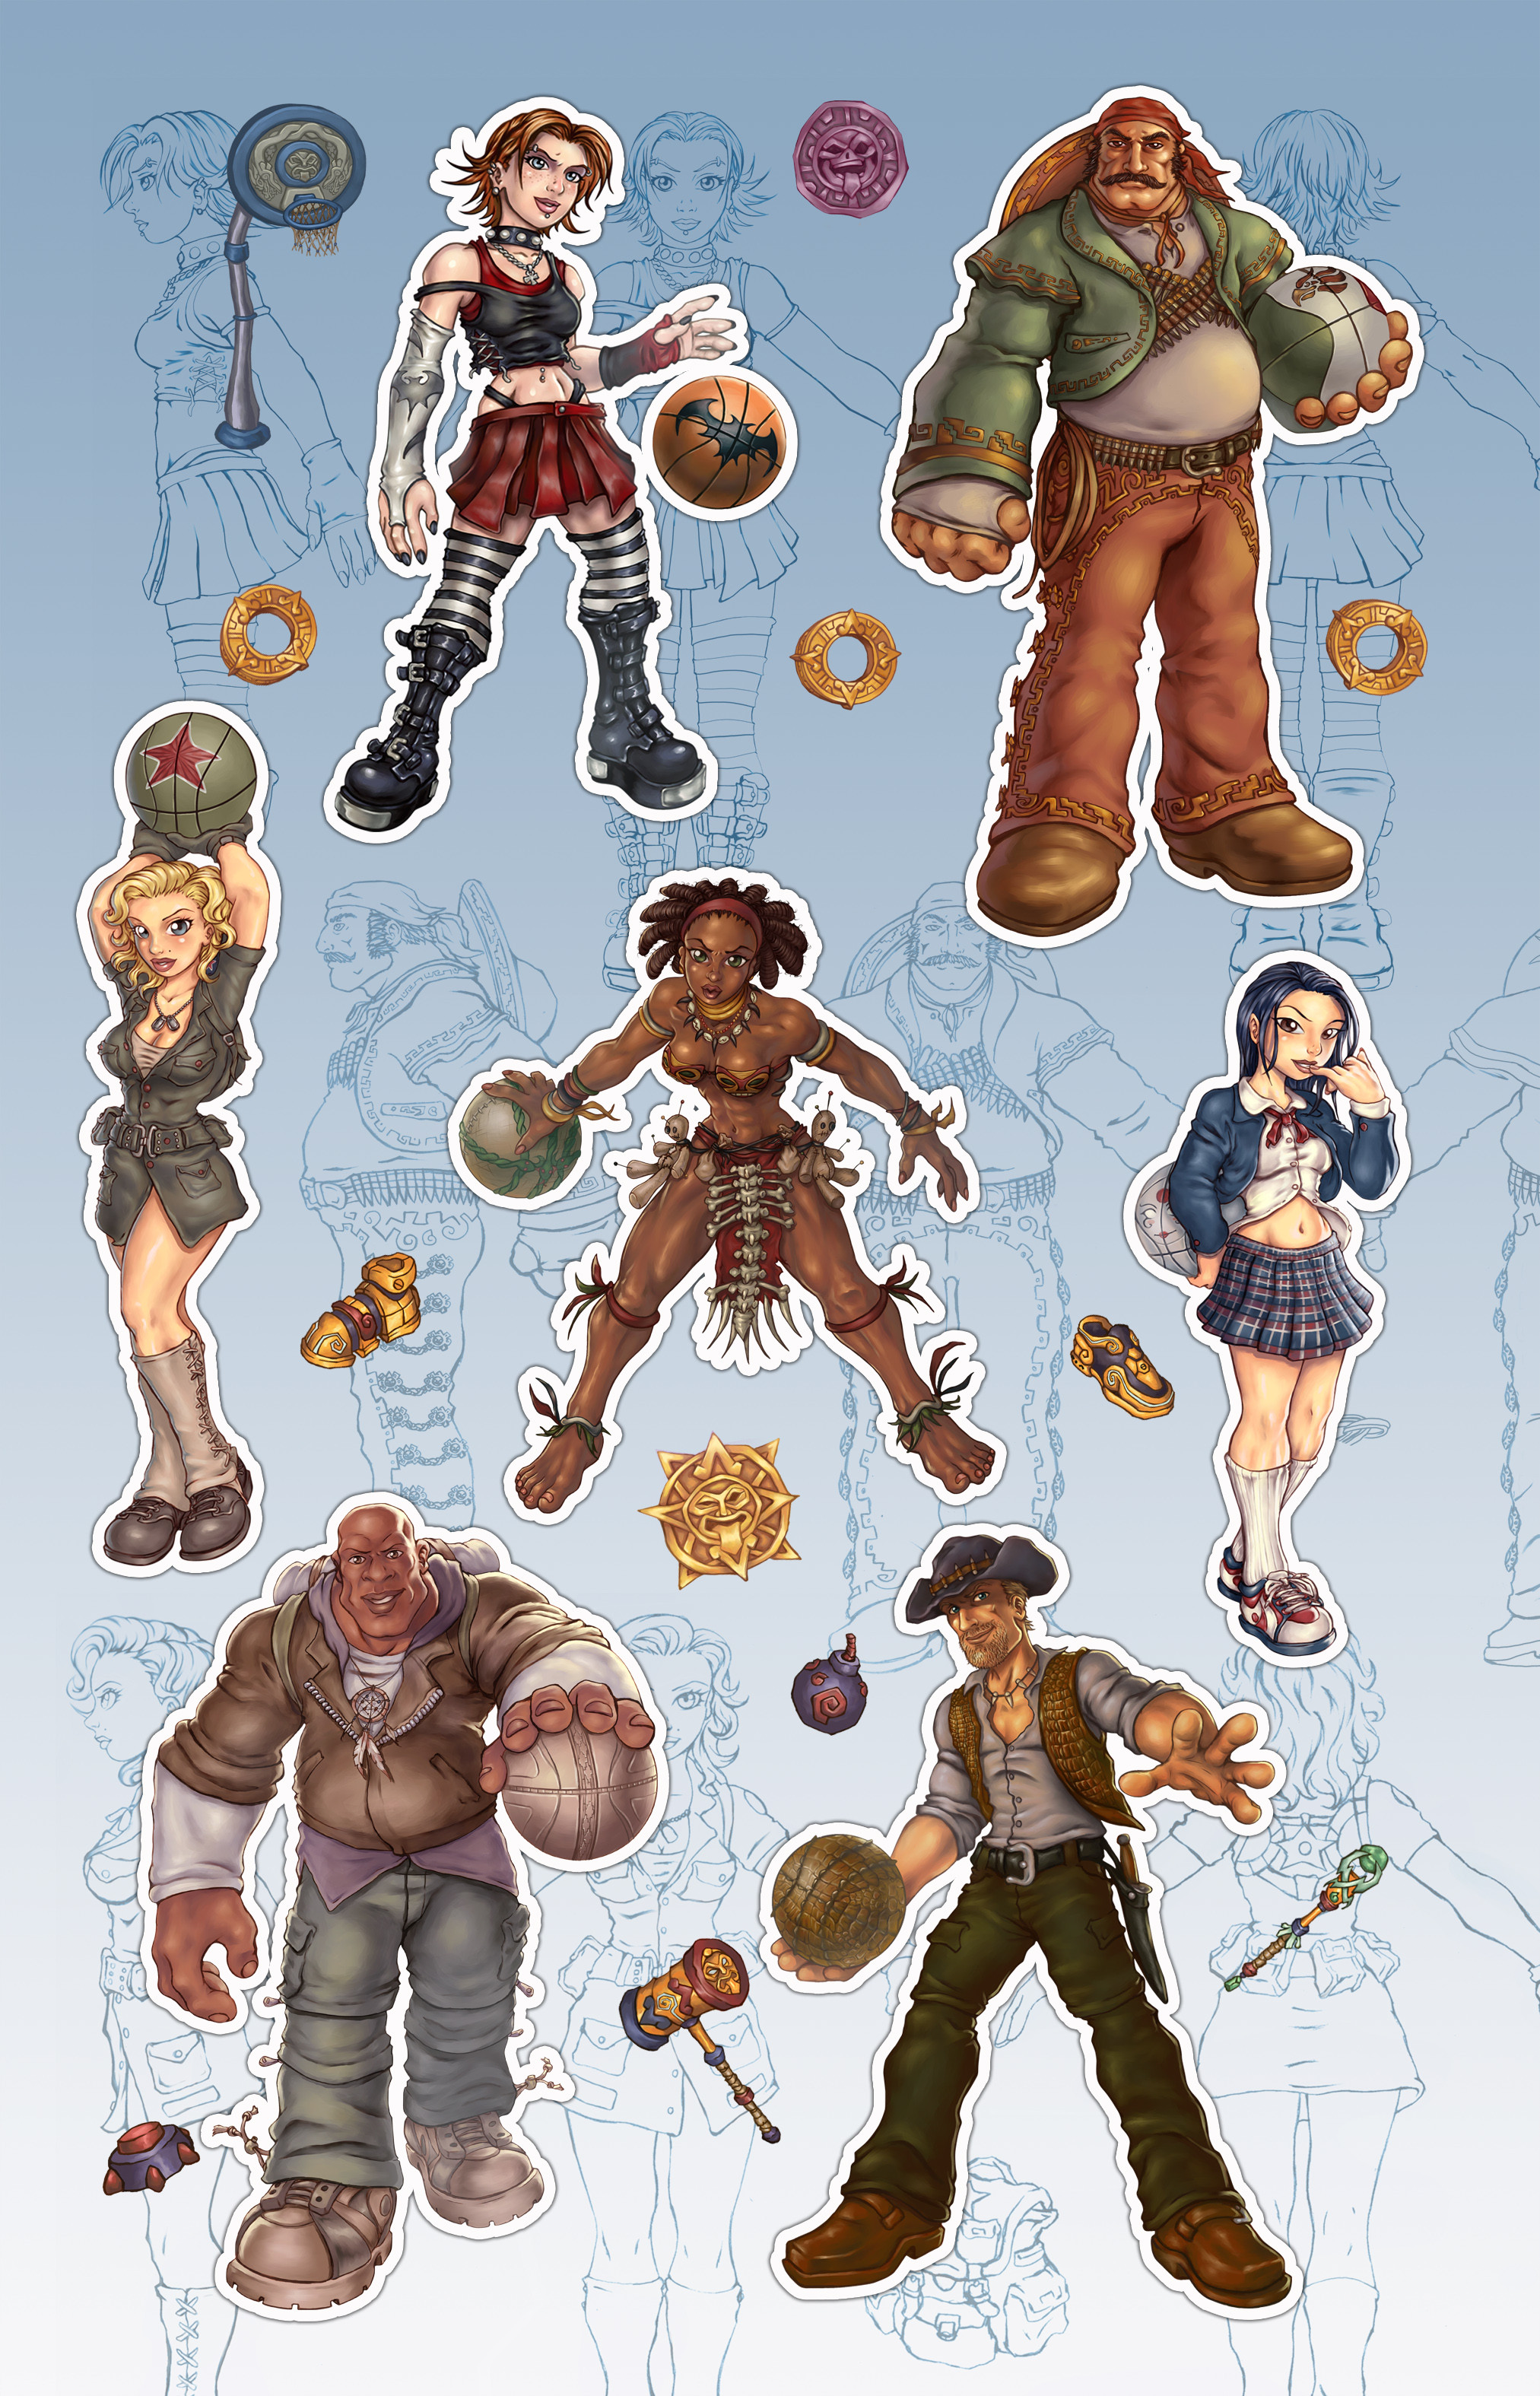 Asorted character designs